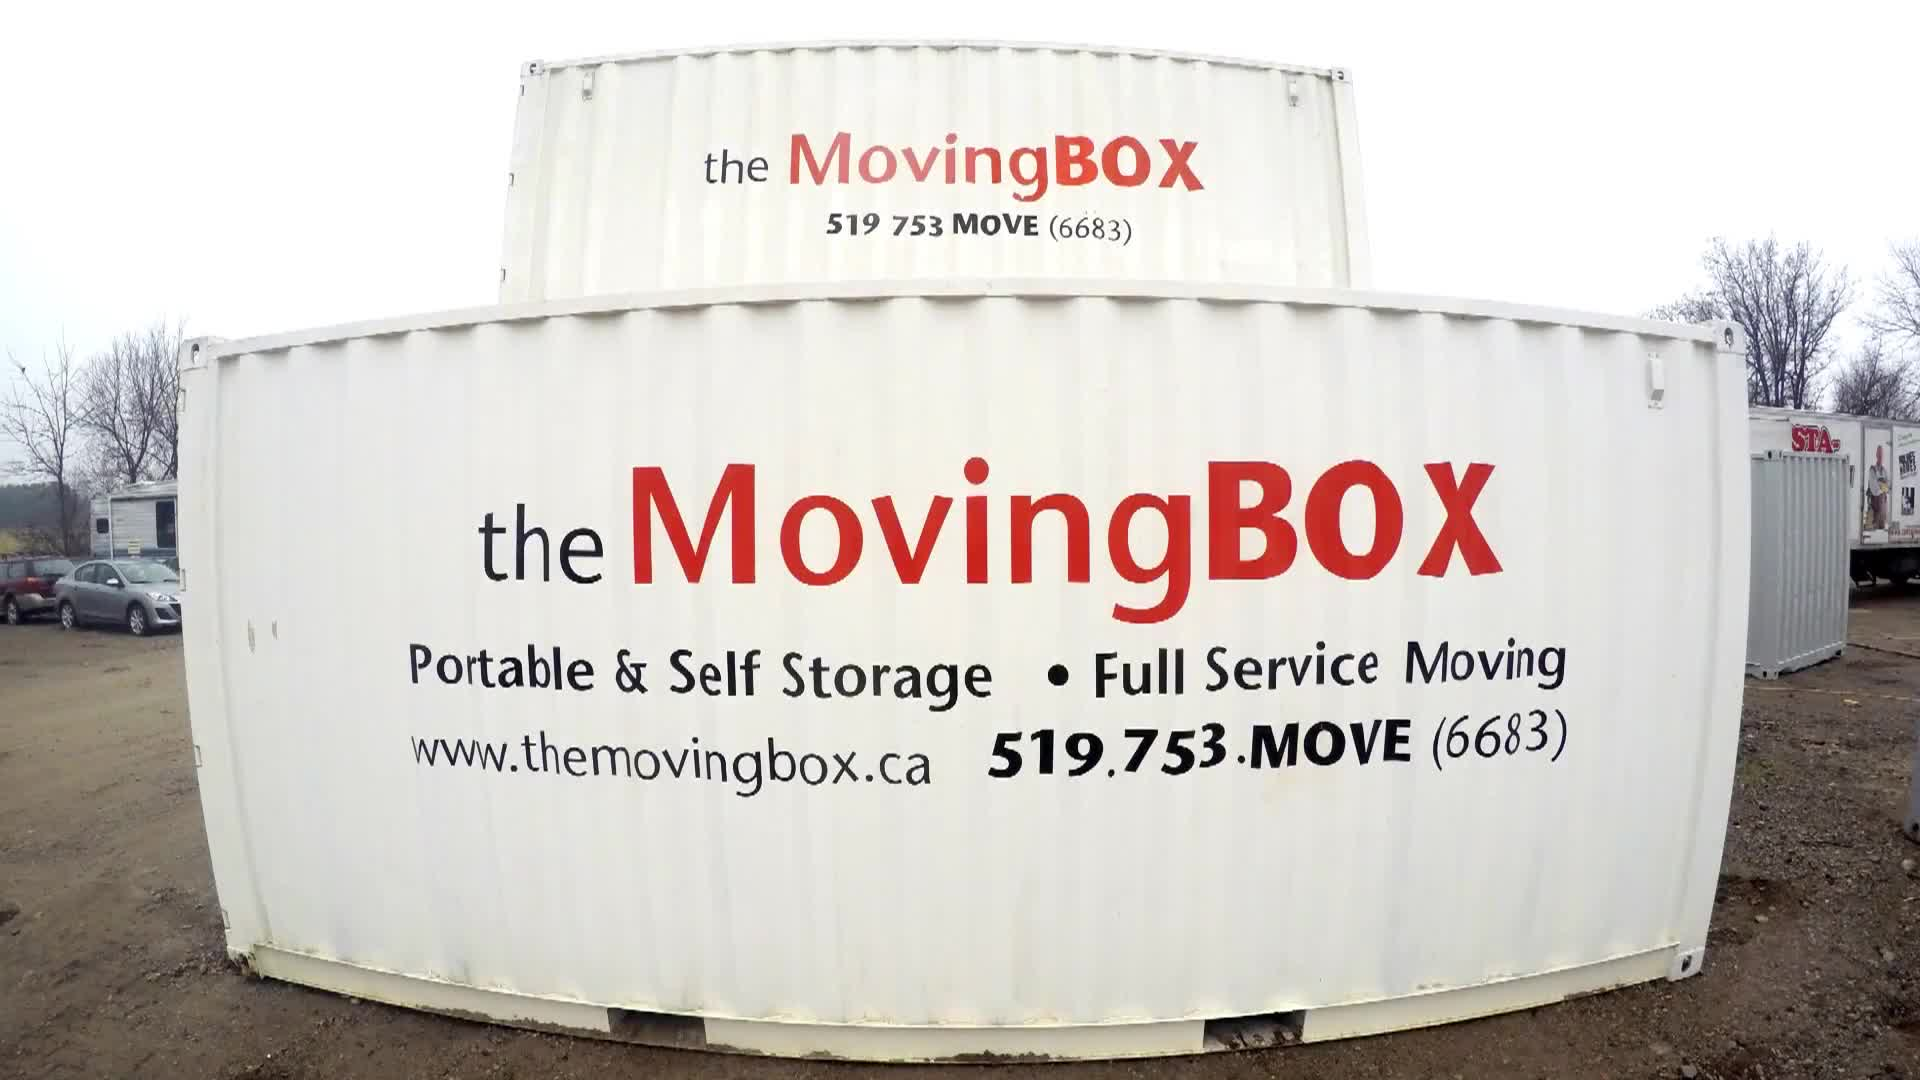 The Moving Box - Storage, Freight & Cargo Containers - 1-866-650-6683